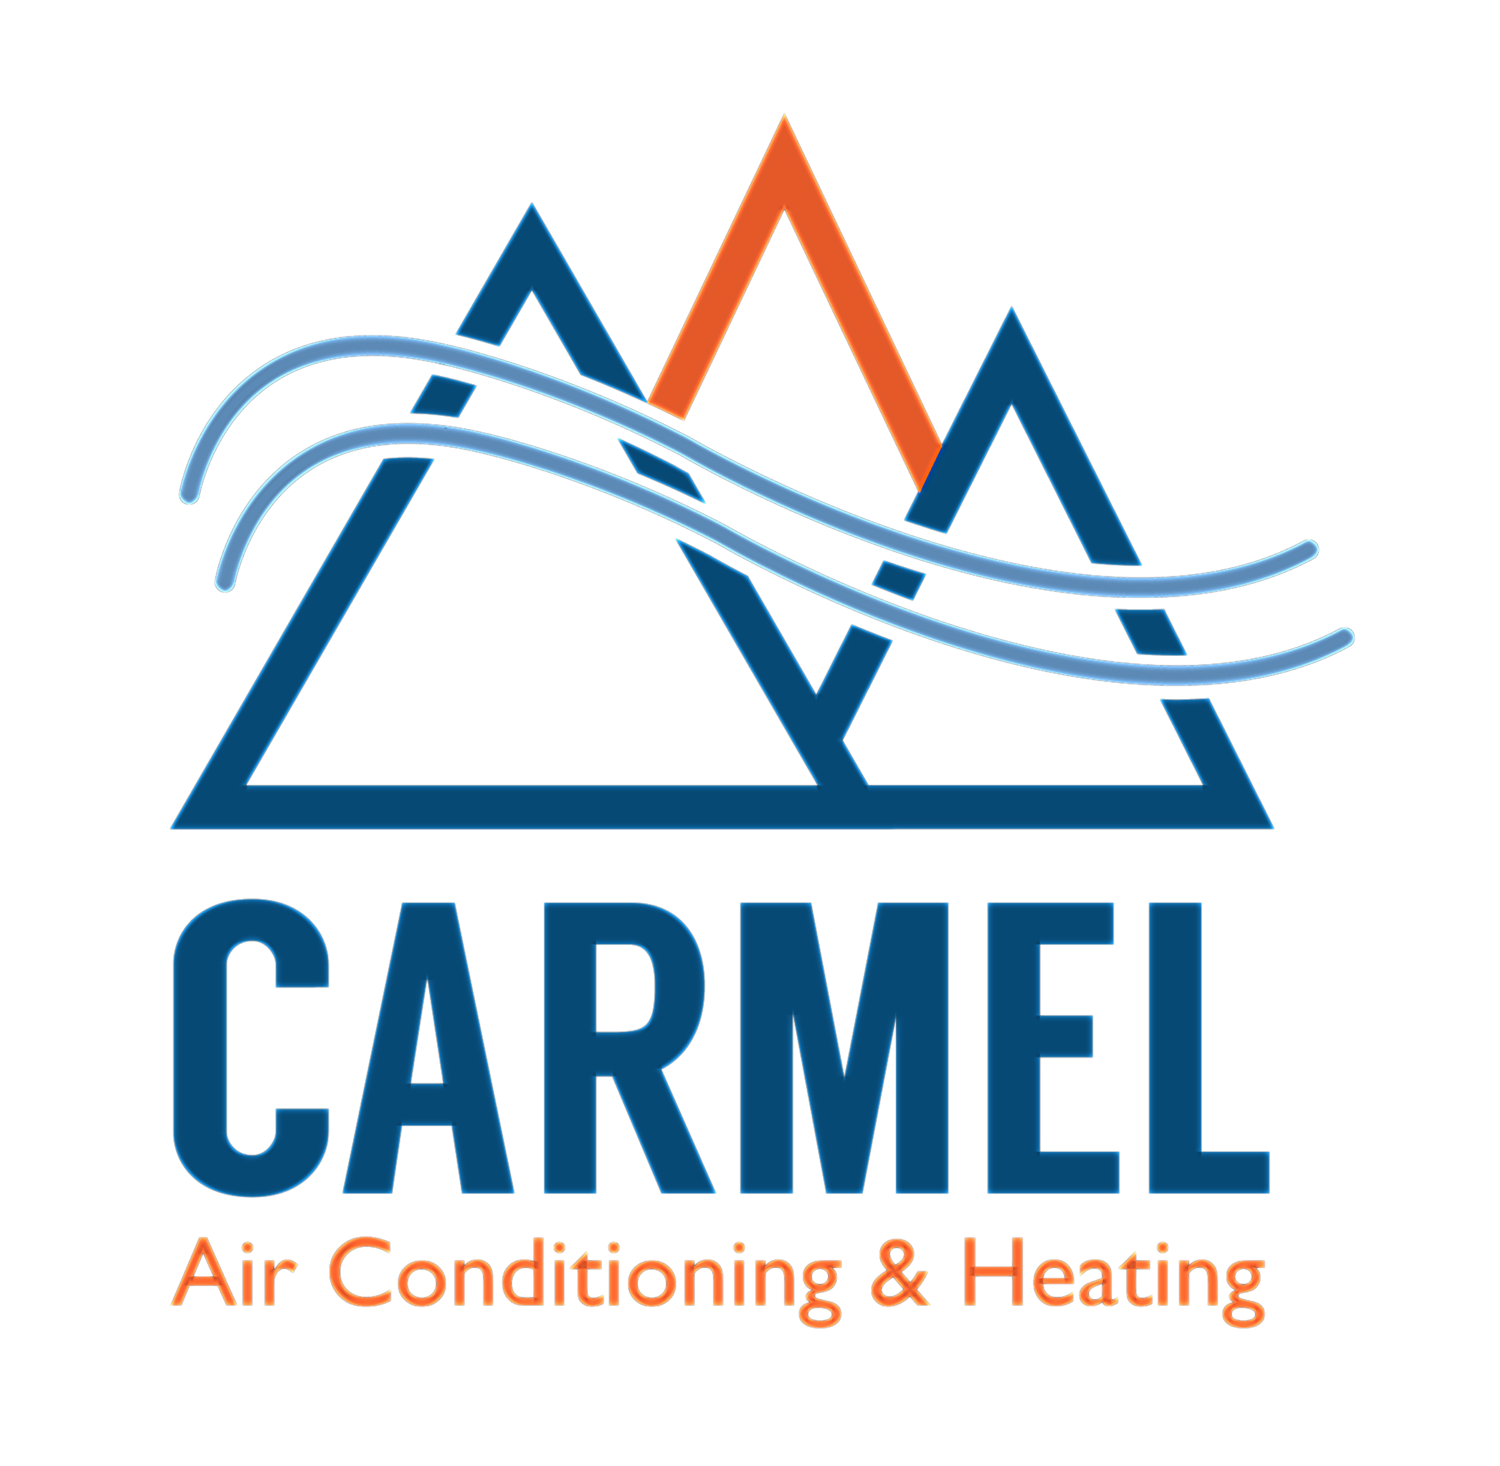 Carmel Air Conditioning & Heating